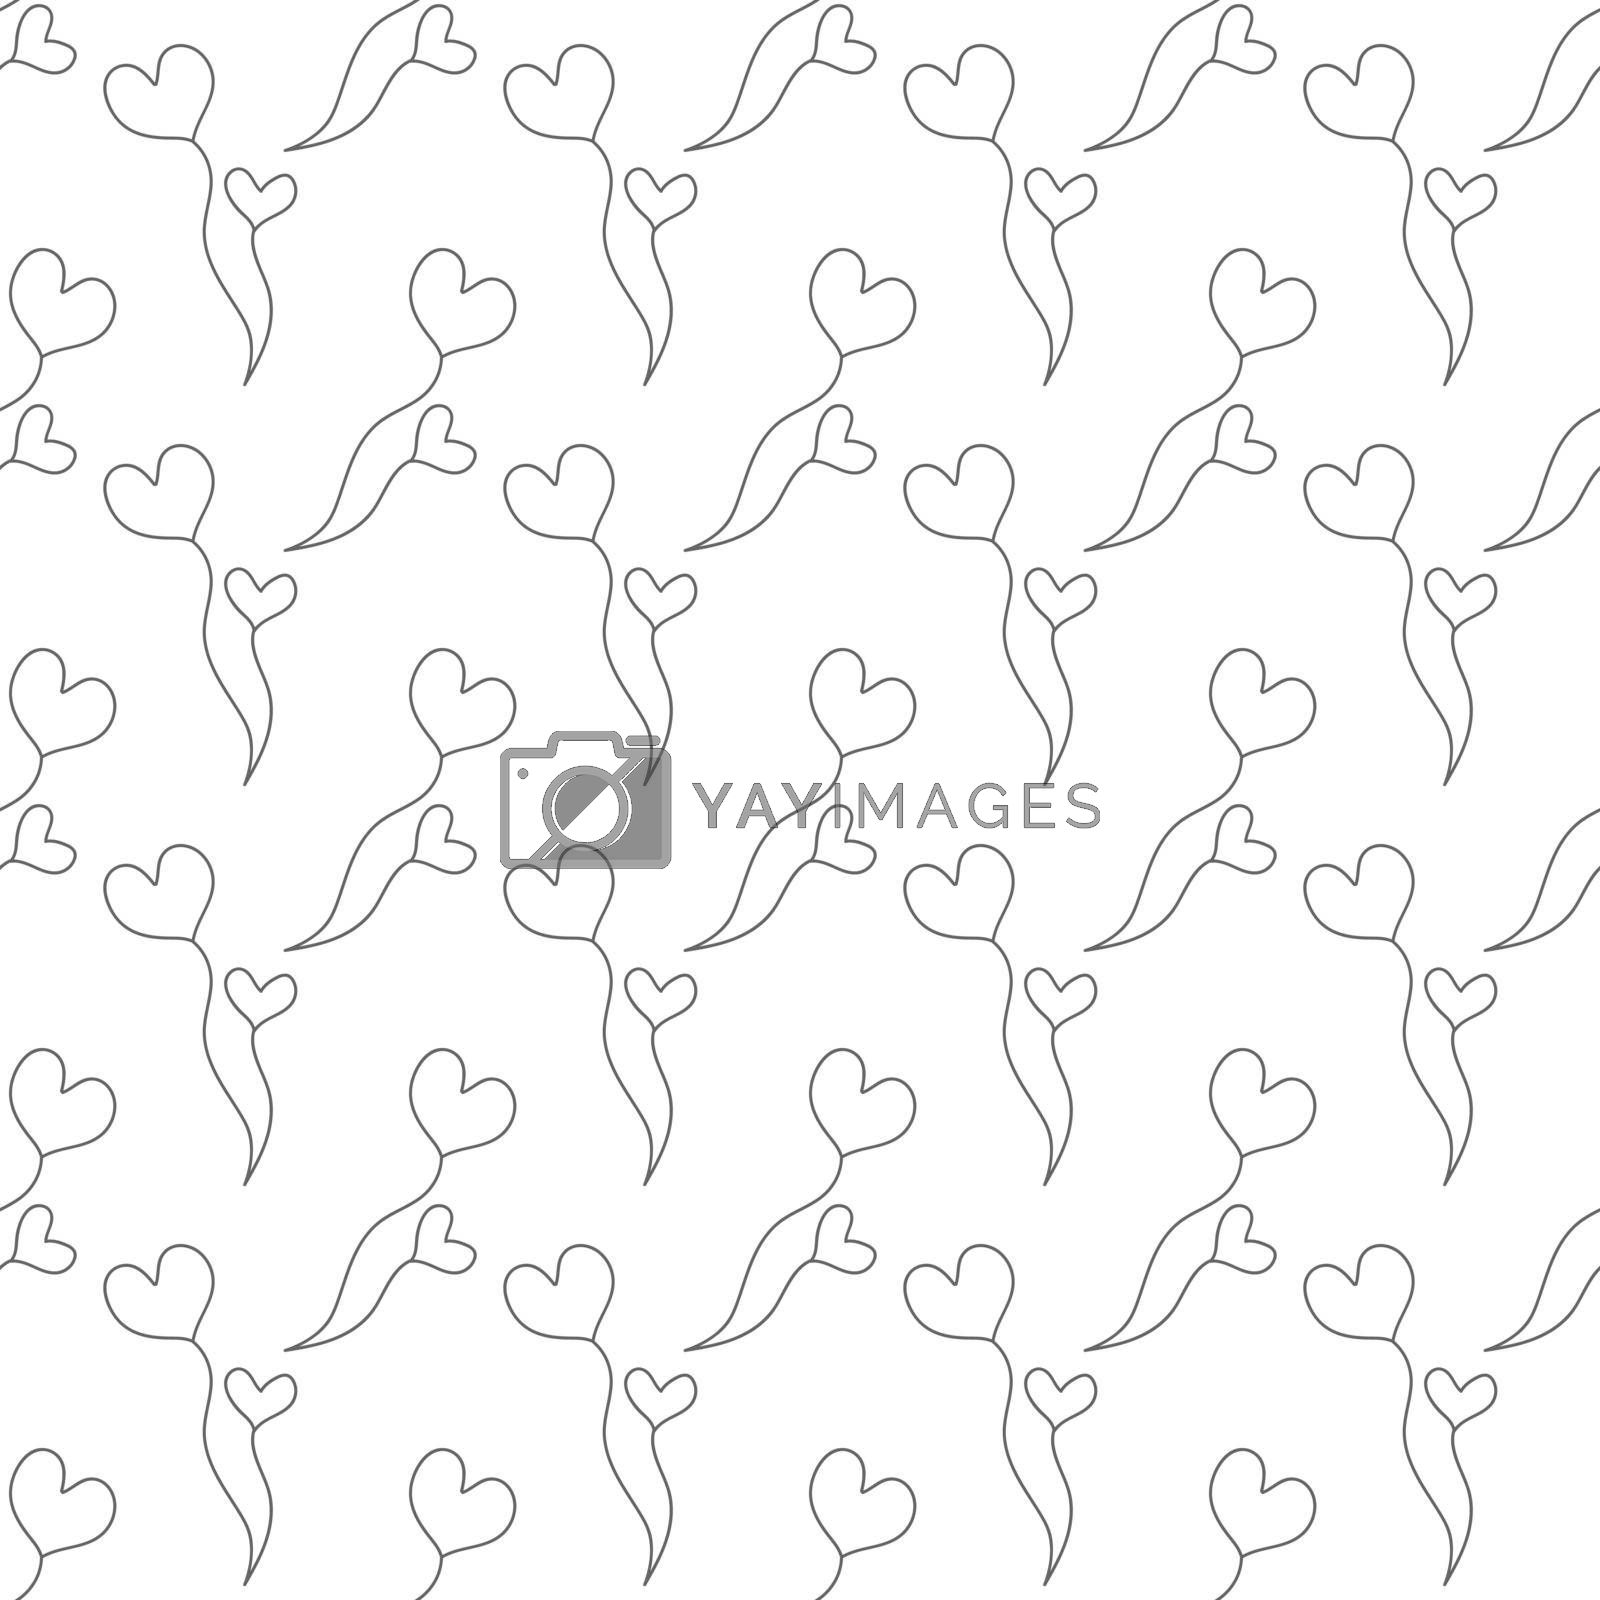 Seamless floral pattern for texture, textiles, and simple backgrounds. Flat Style